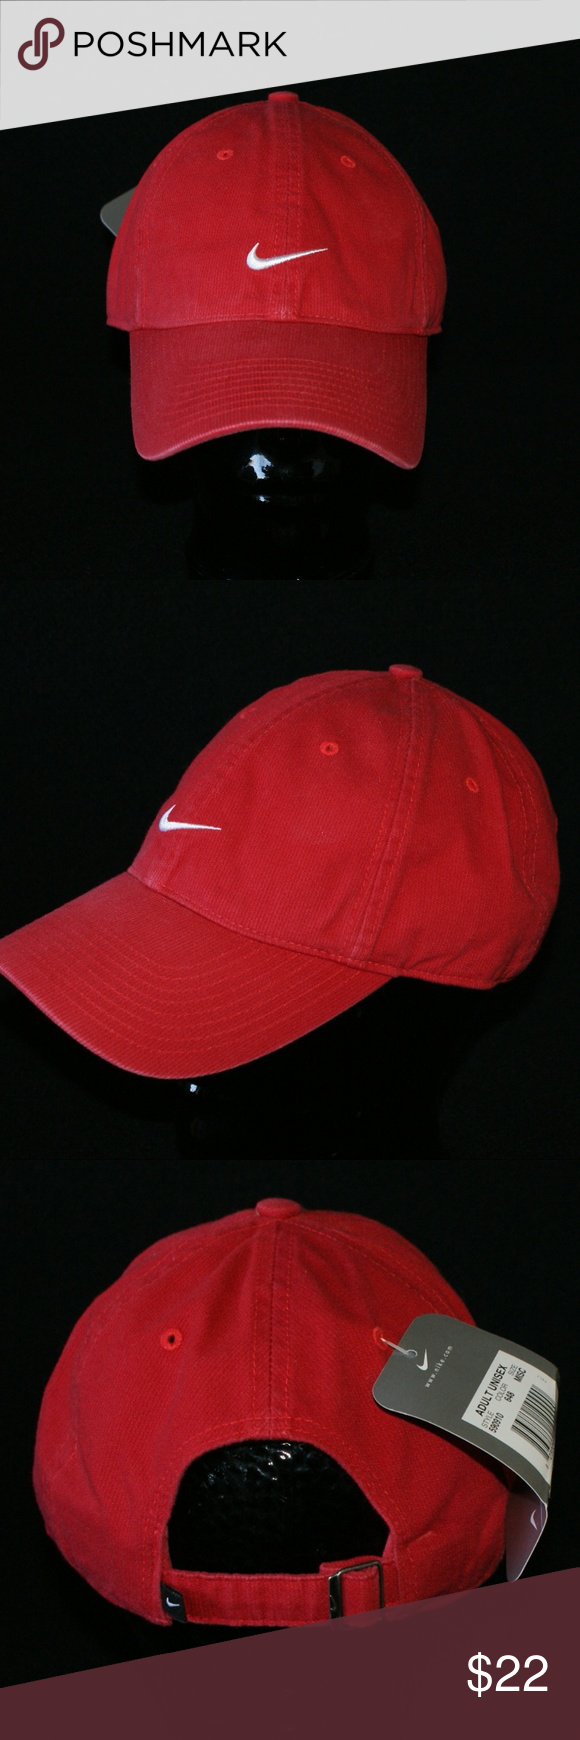 568a11f48f8 Nike Hat.....NWT Brand New W Tags...Never Worn 100% cotton...thin corduroy  Adjustable Back Color  Red w White Swoosh Nike Accessories Hats